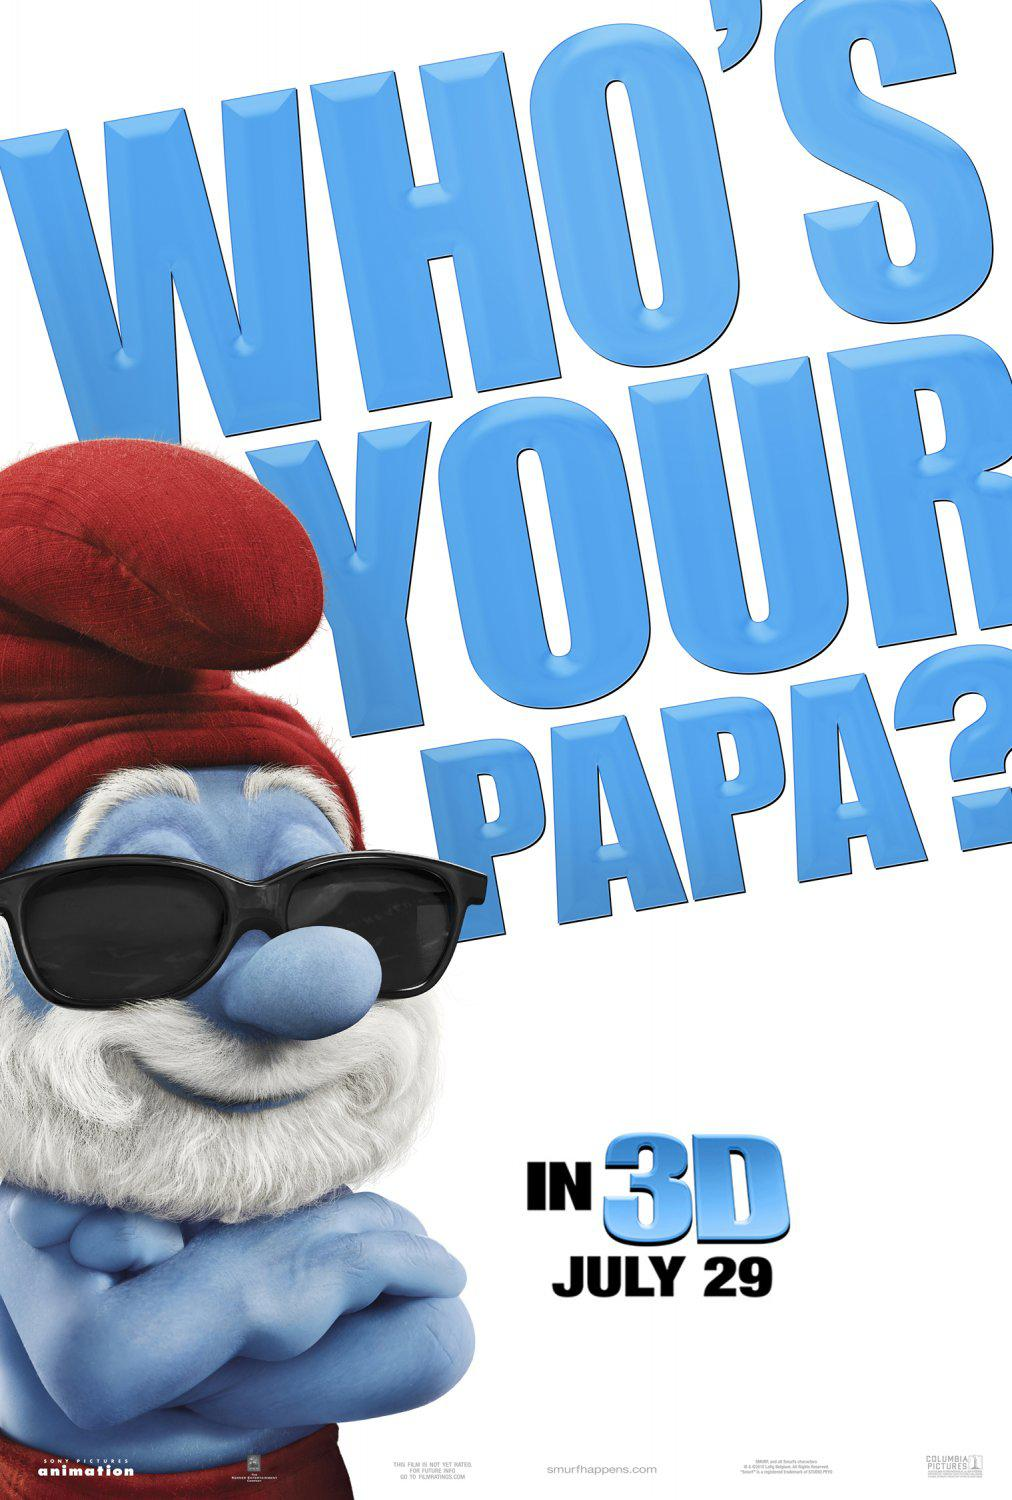 Film I Puffi in 3D - Movie Smurfs in 3D - Qho's your Papa?